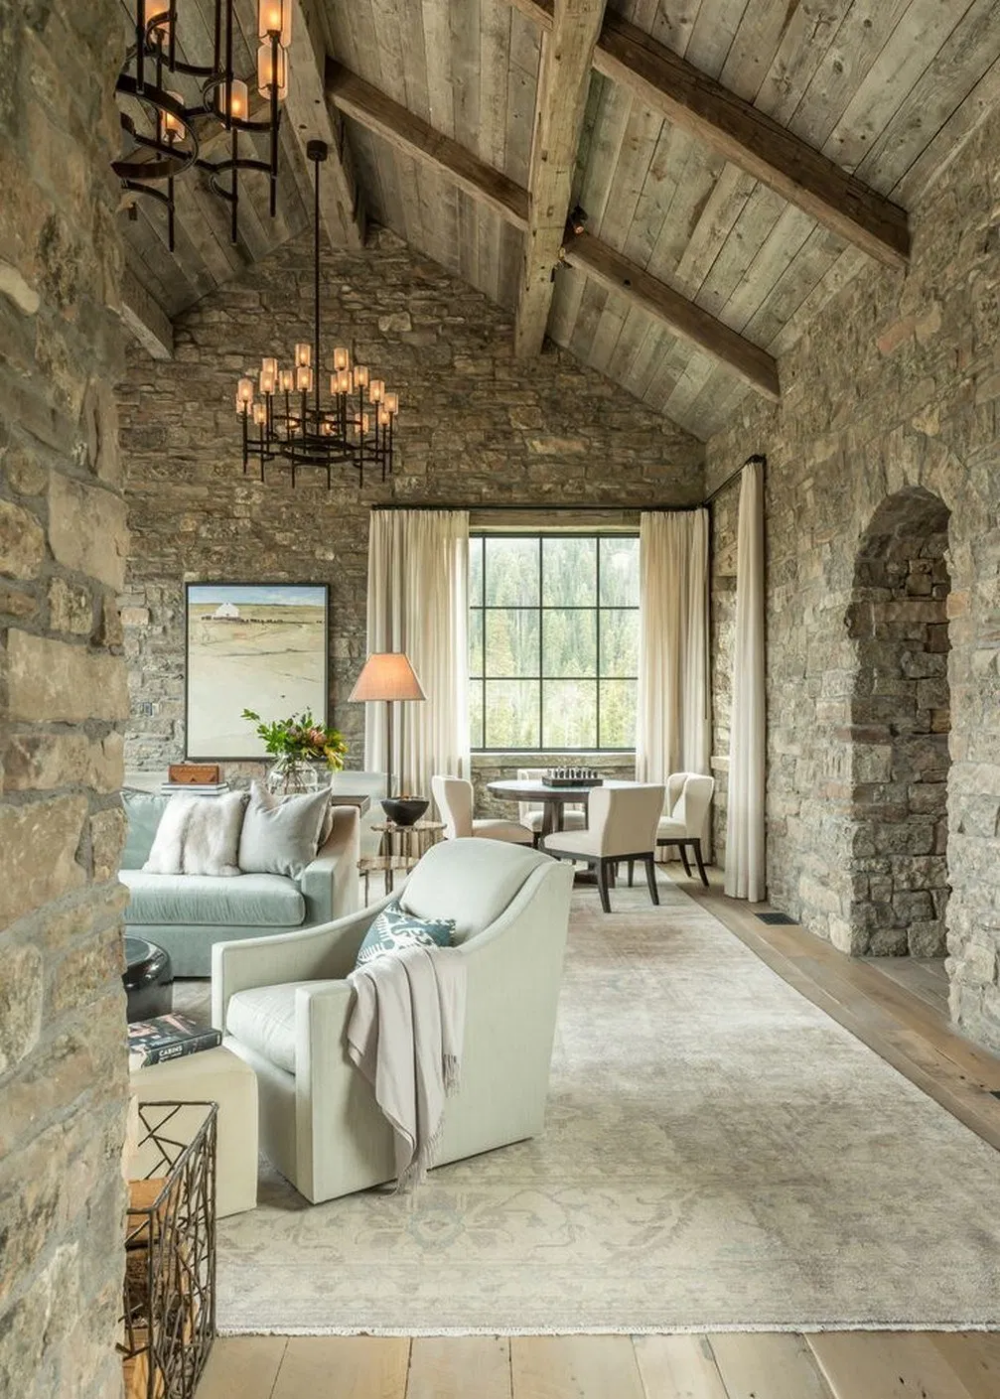 Pin By Beverley Kelso On Dream Home In 2020 Beautiful Houses Interior House Interior Decor Rustic House